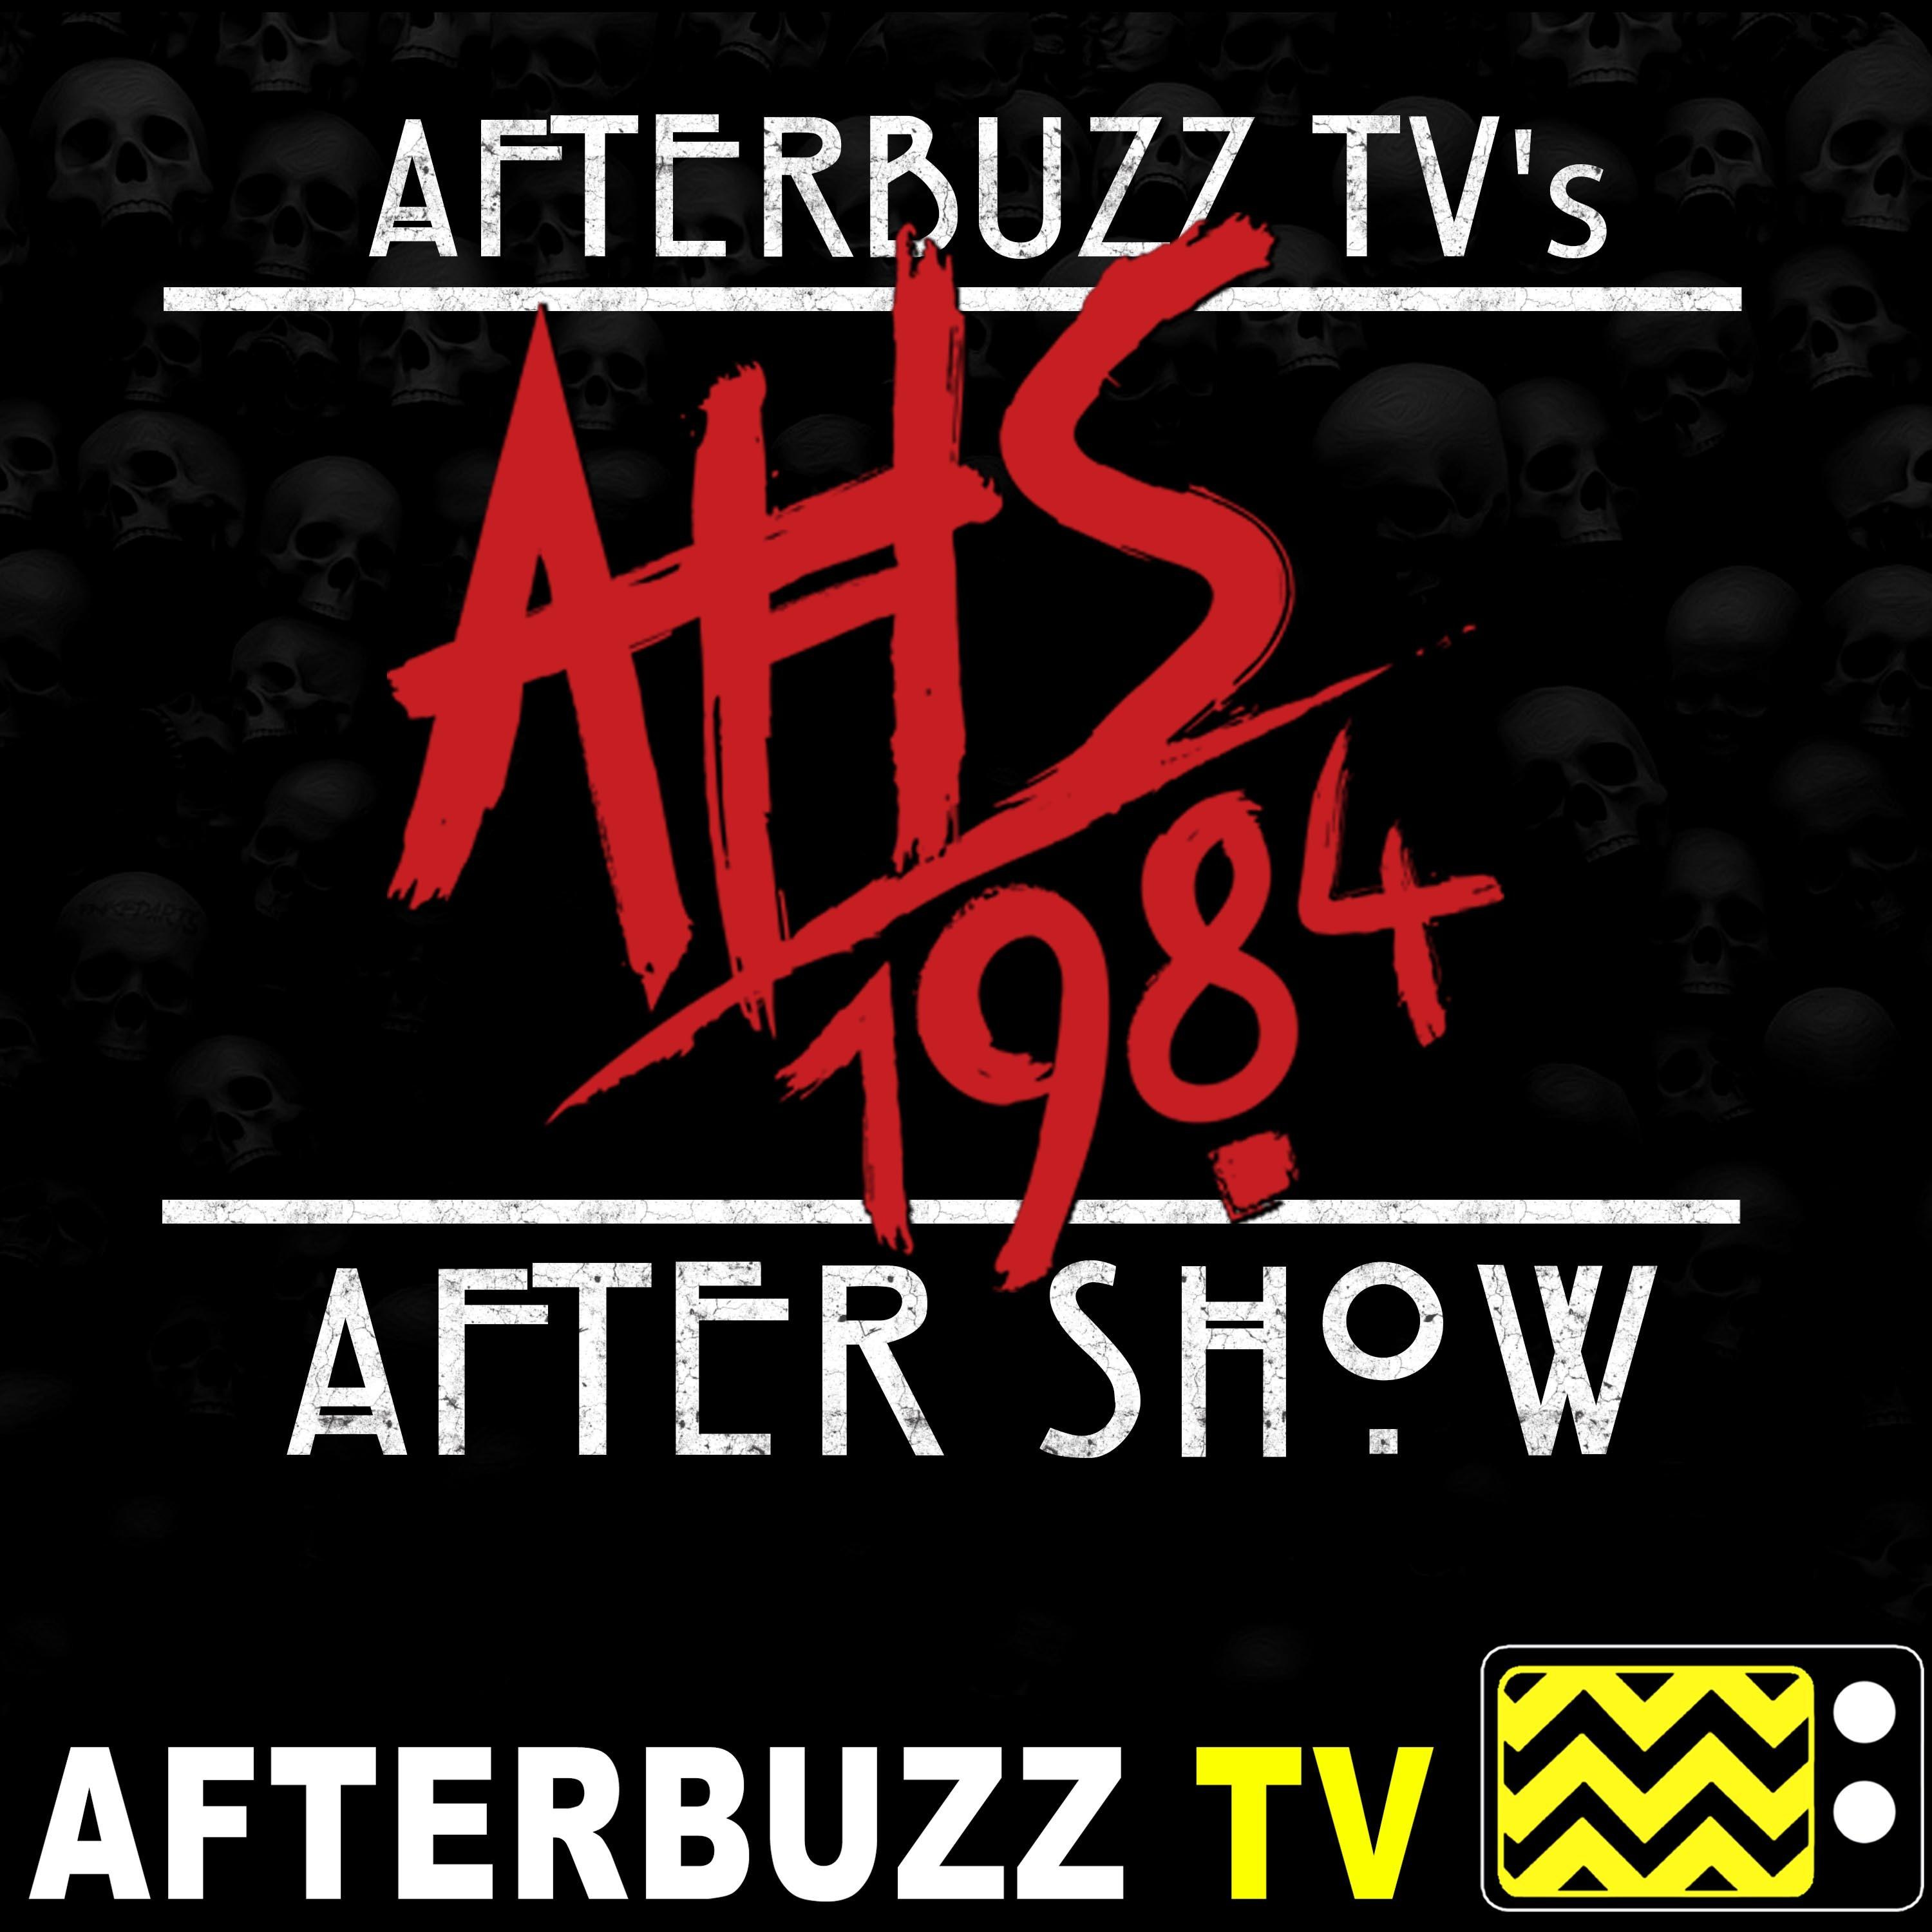 American Horror Story: Hotel AfterBuzz TV AfterShow